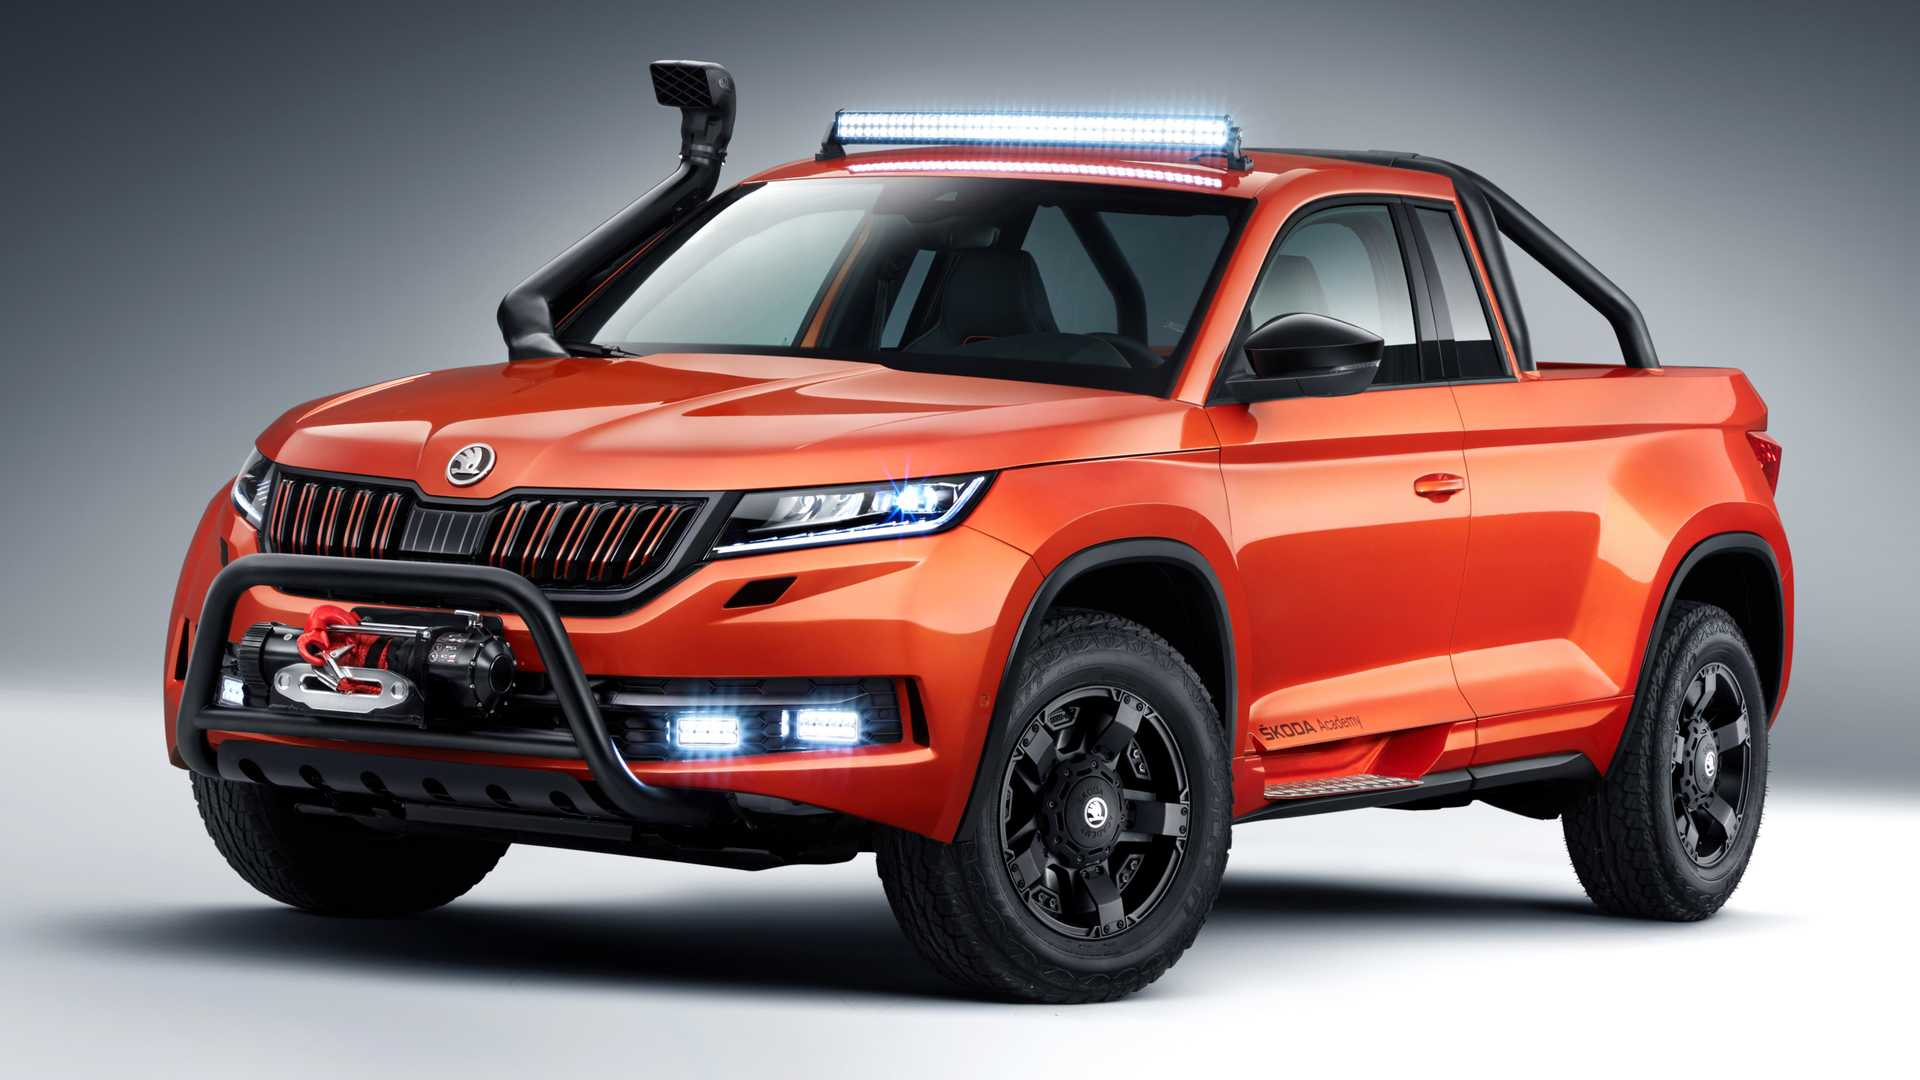 Skoda has officially presented the sixth prototype vehicle conceptualized and built by the students of its vocational academy. Based on the Kodiaq SUV chassis, the conversion is a pickup truck called 'Mountiaq'